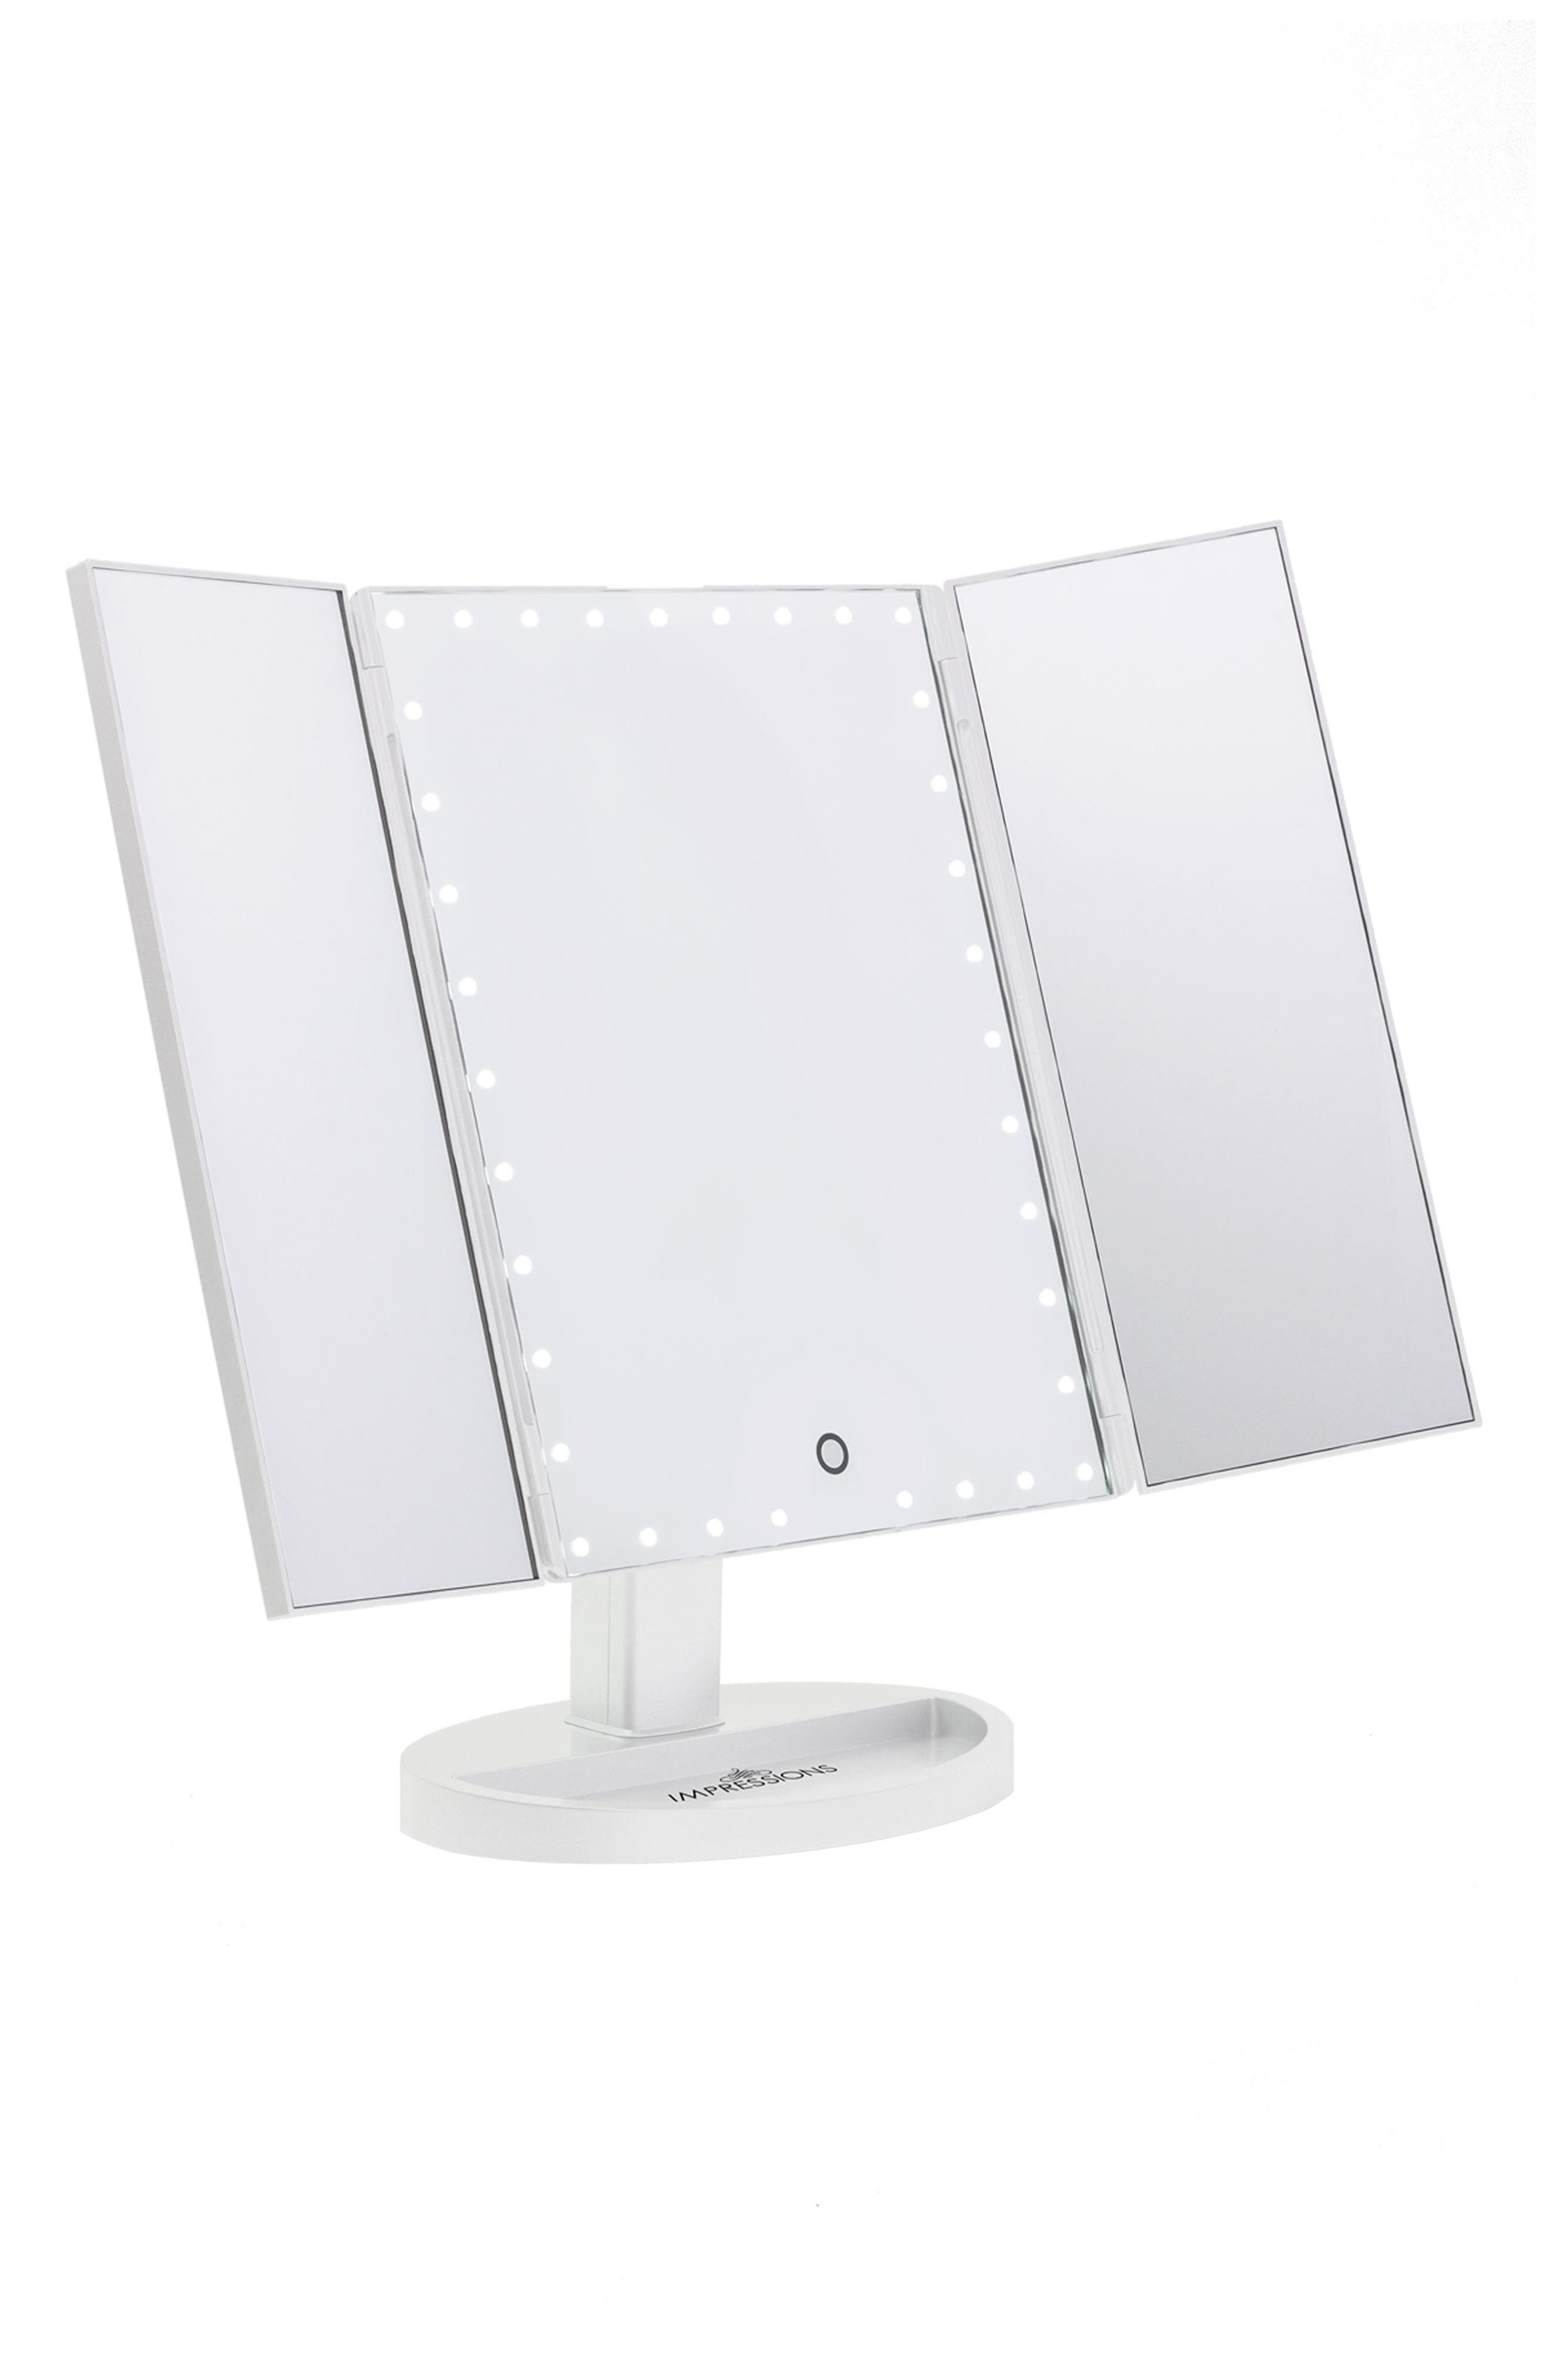 Alternate Image 2  - Impressions Vanity Co. Touch Trifold XL Dimmable LED Makeup Mirror